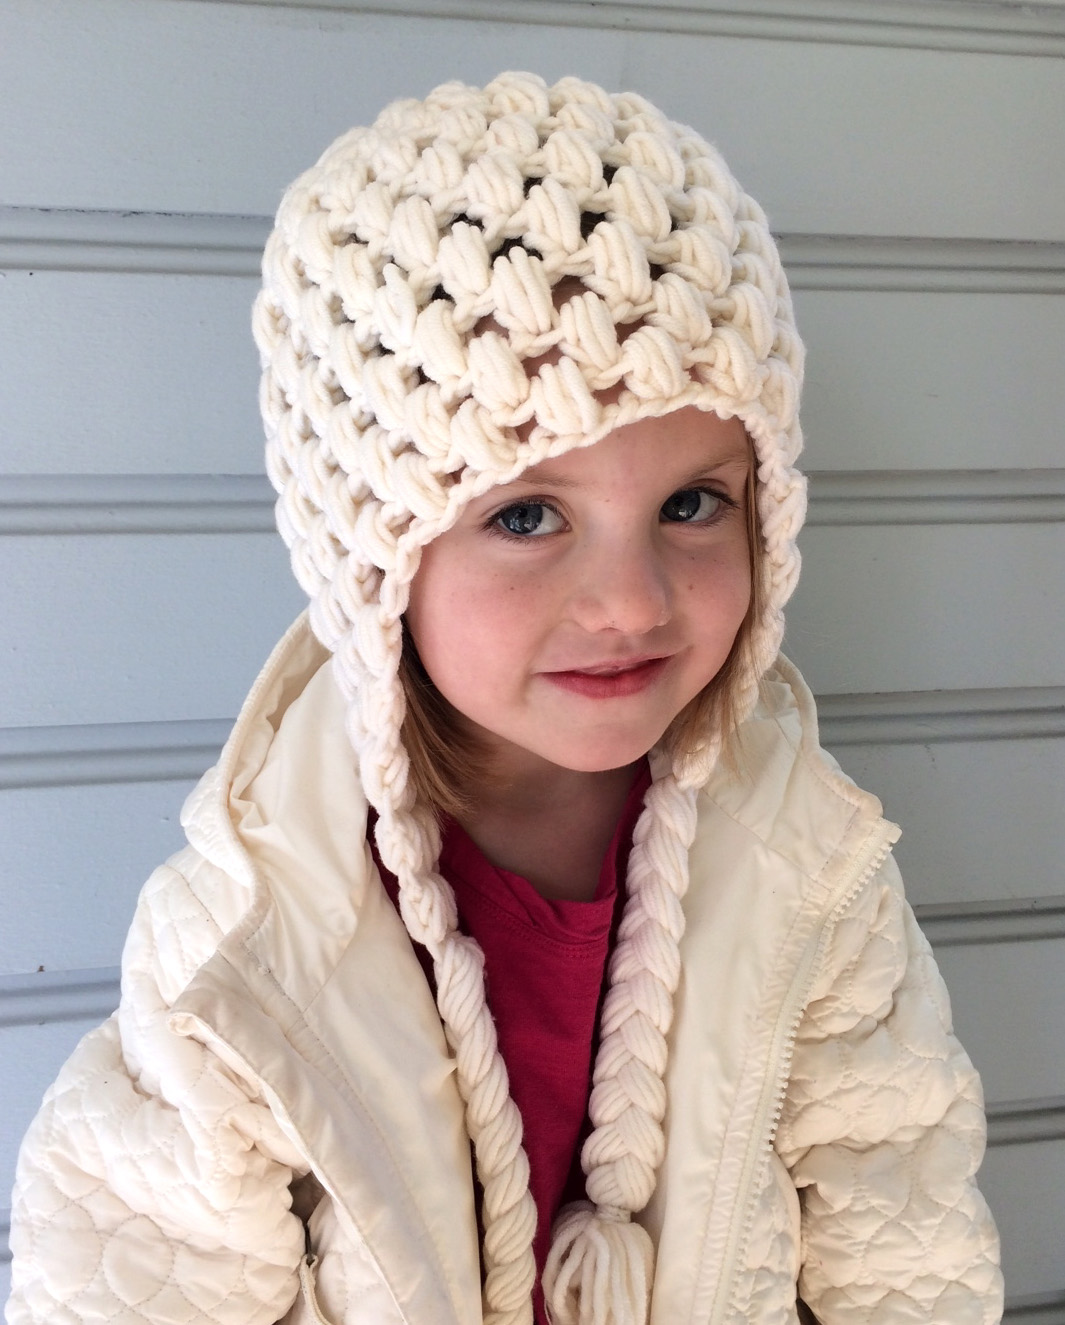 Crochet Patterns Scarfie Yarn : Chamonix Hat - The Pipers Girls